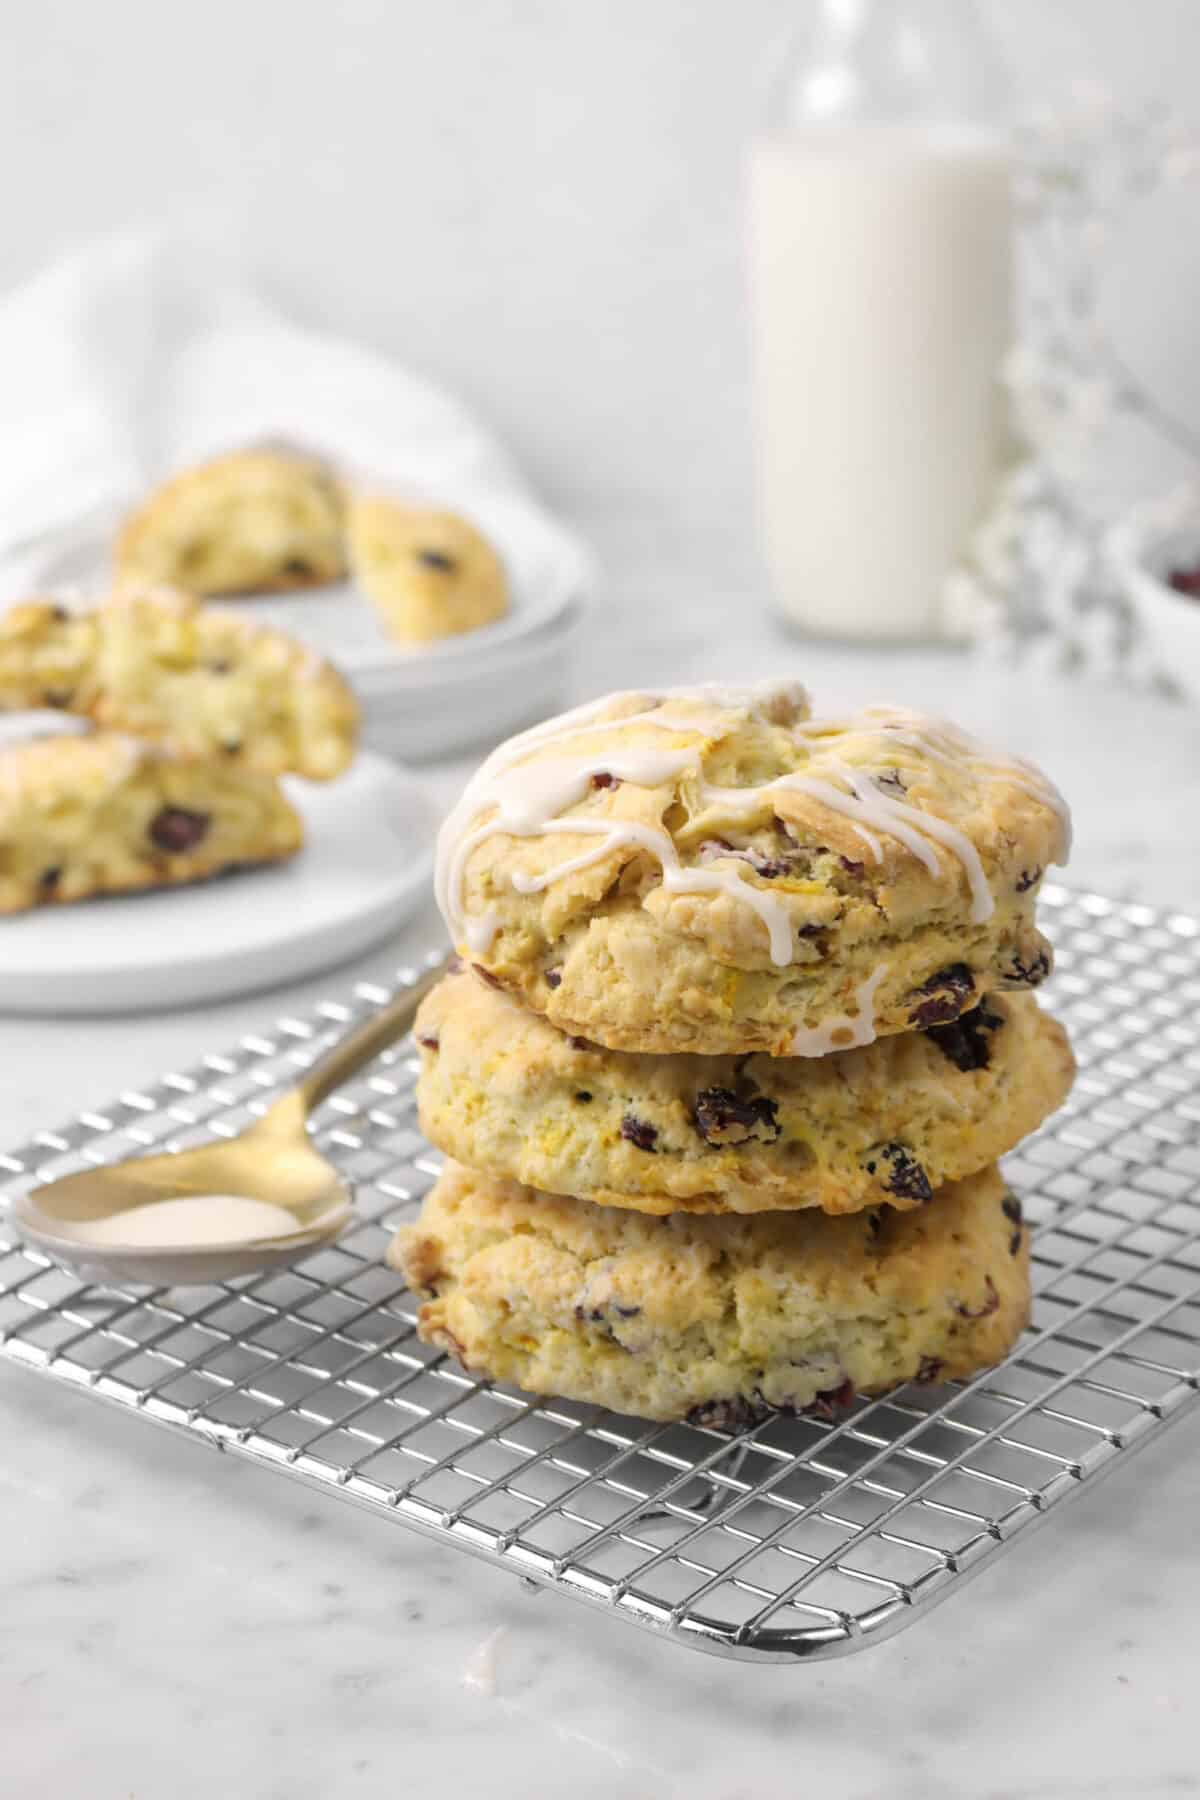 three scones stacked on a wire cooling rack with a gold spoon, more scones behind, and a glass of milk